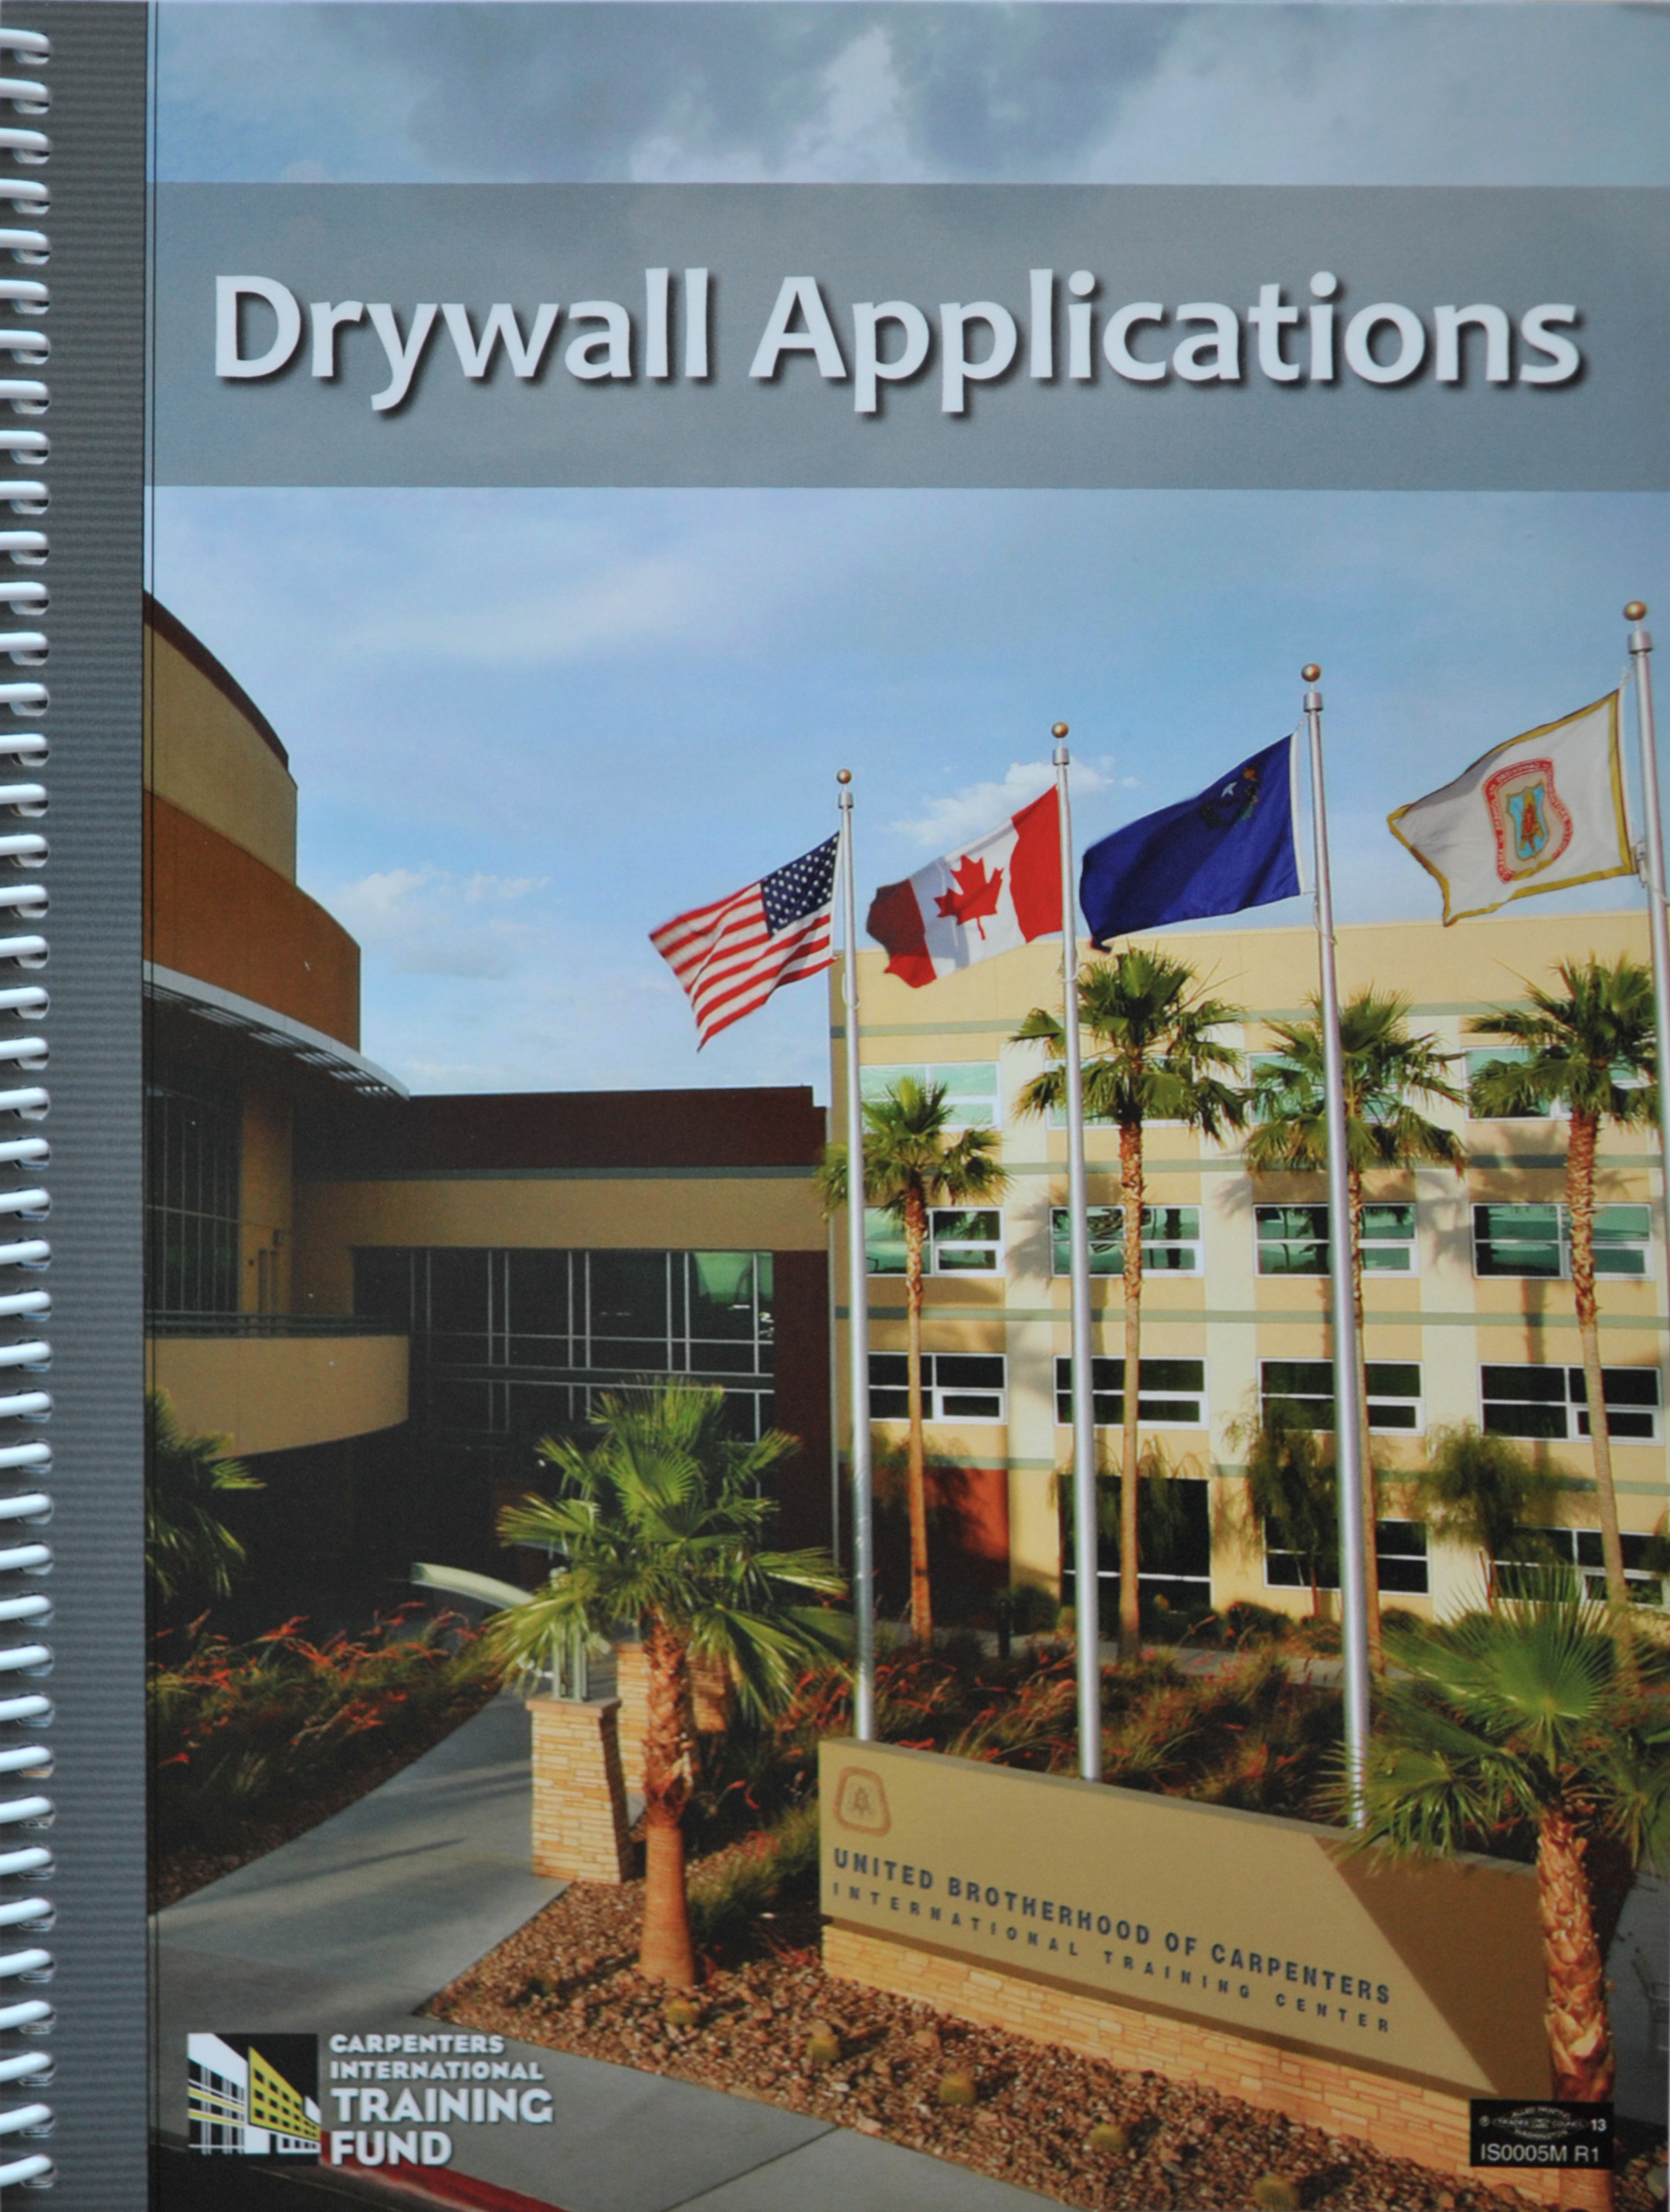 Drywall Applications